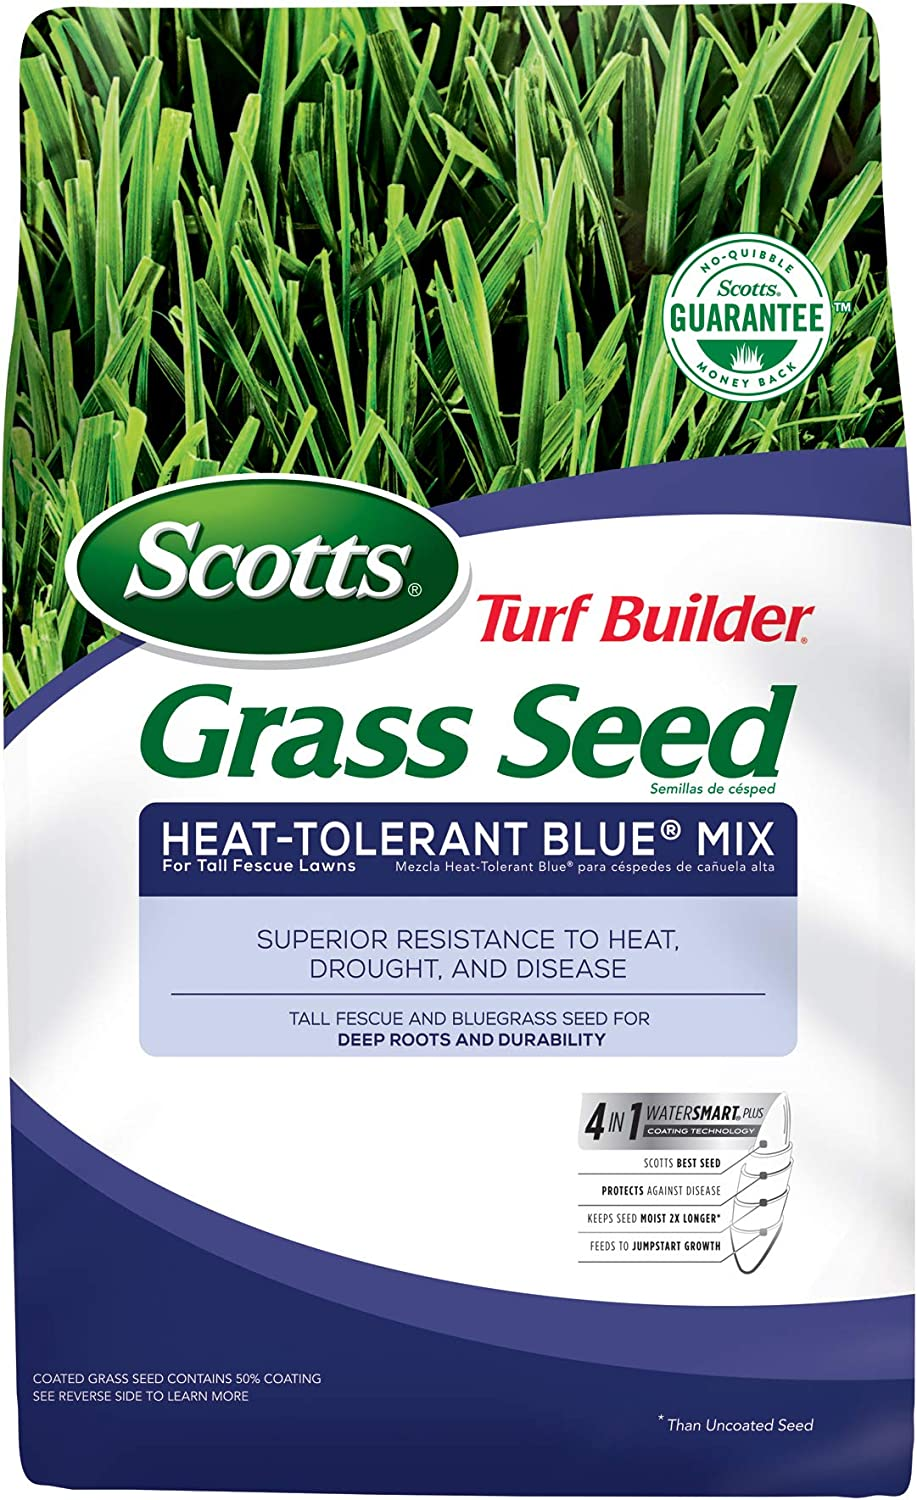 Scotts Turf Builder Grass Seed Heat-Tolerant Blue Mix For Tall Fescue Lawns, 7 lb. - Full Sun and Partial Shade - High Drought Resistance - Seeds up to 1,750 sq. ft.